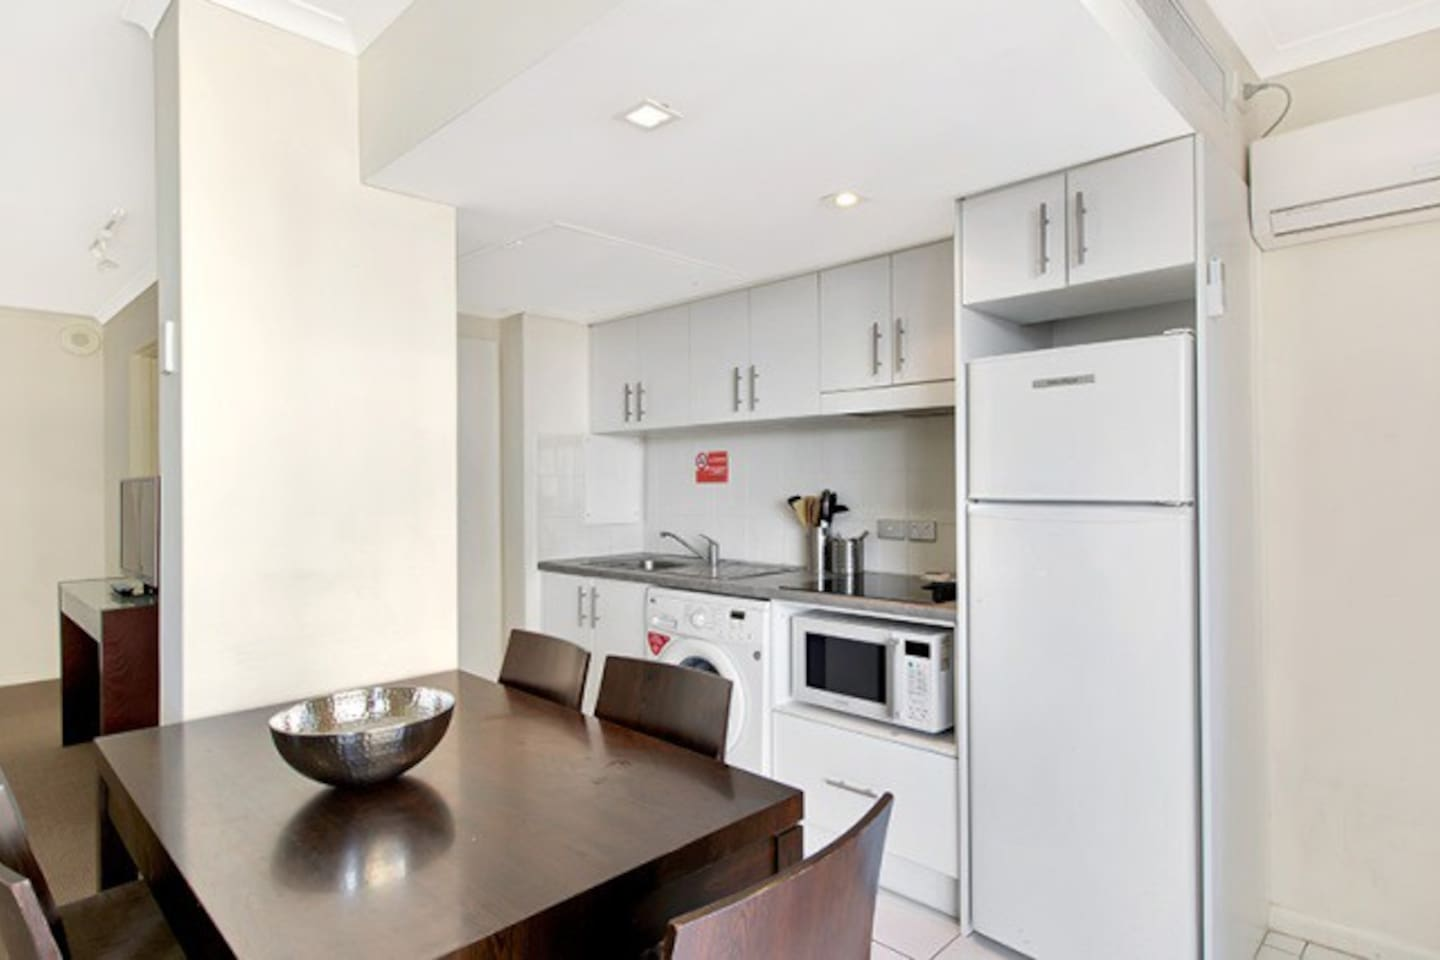 Complete galley kitchen, cook top, microwave oven, washing machine.